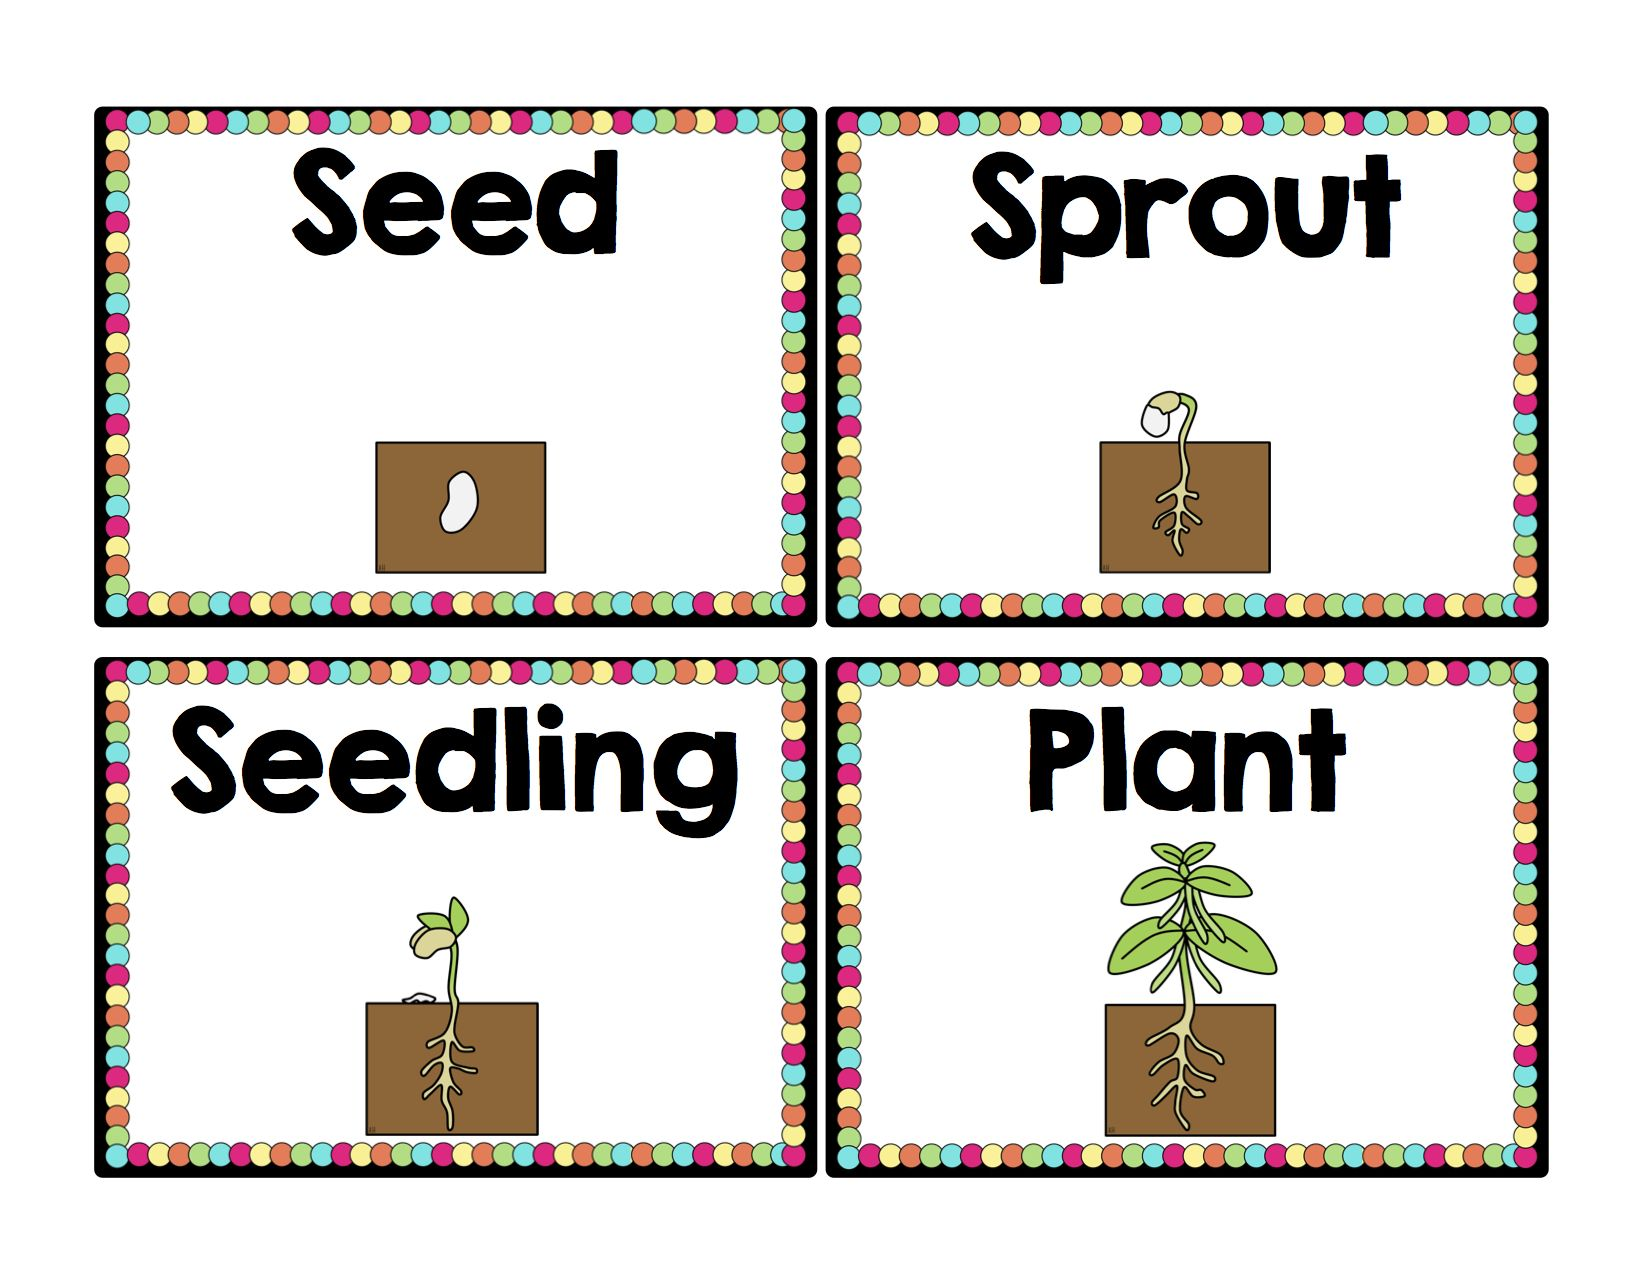 Life Cycle Of A Plant Sequencing Cards Plant Life Cycle Plants Sequencing Cards [ 1275 x 1650 Pixel ]